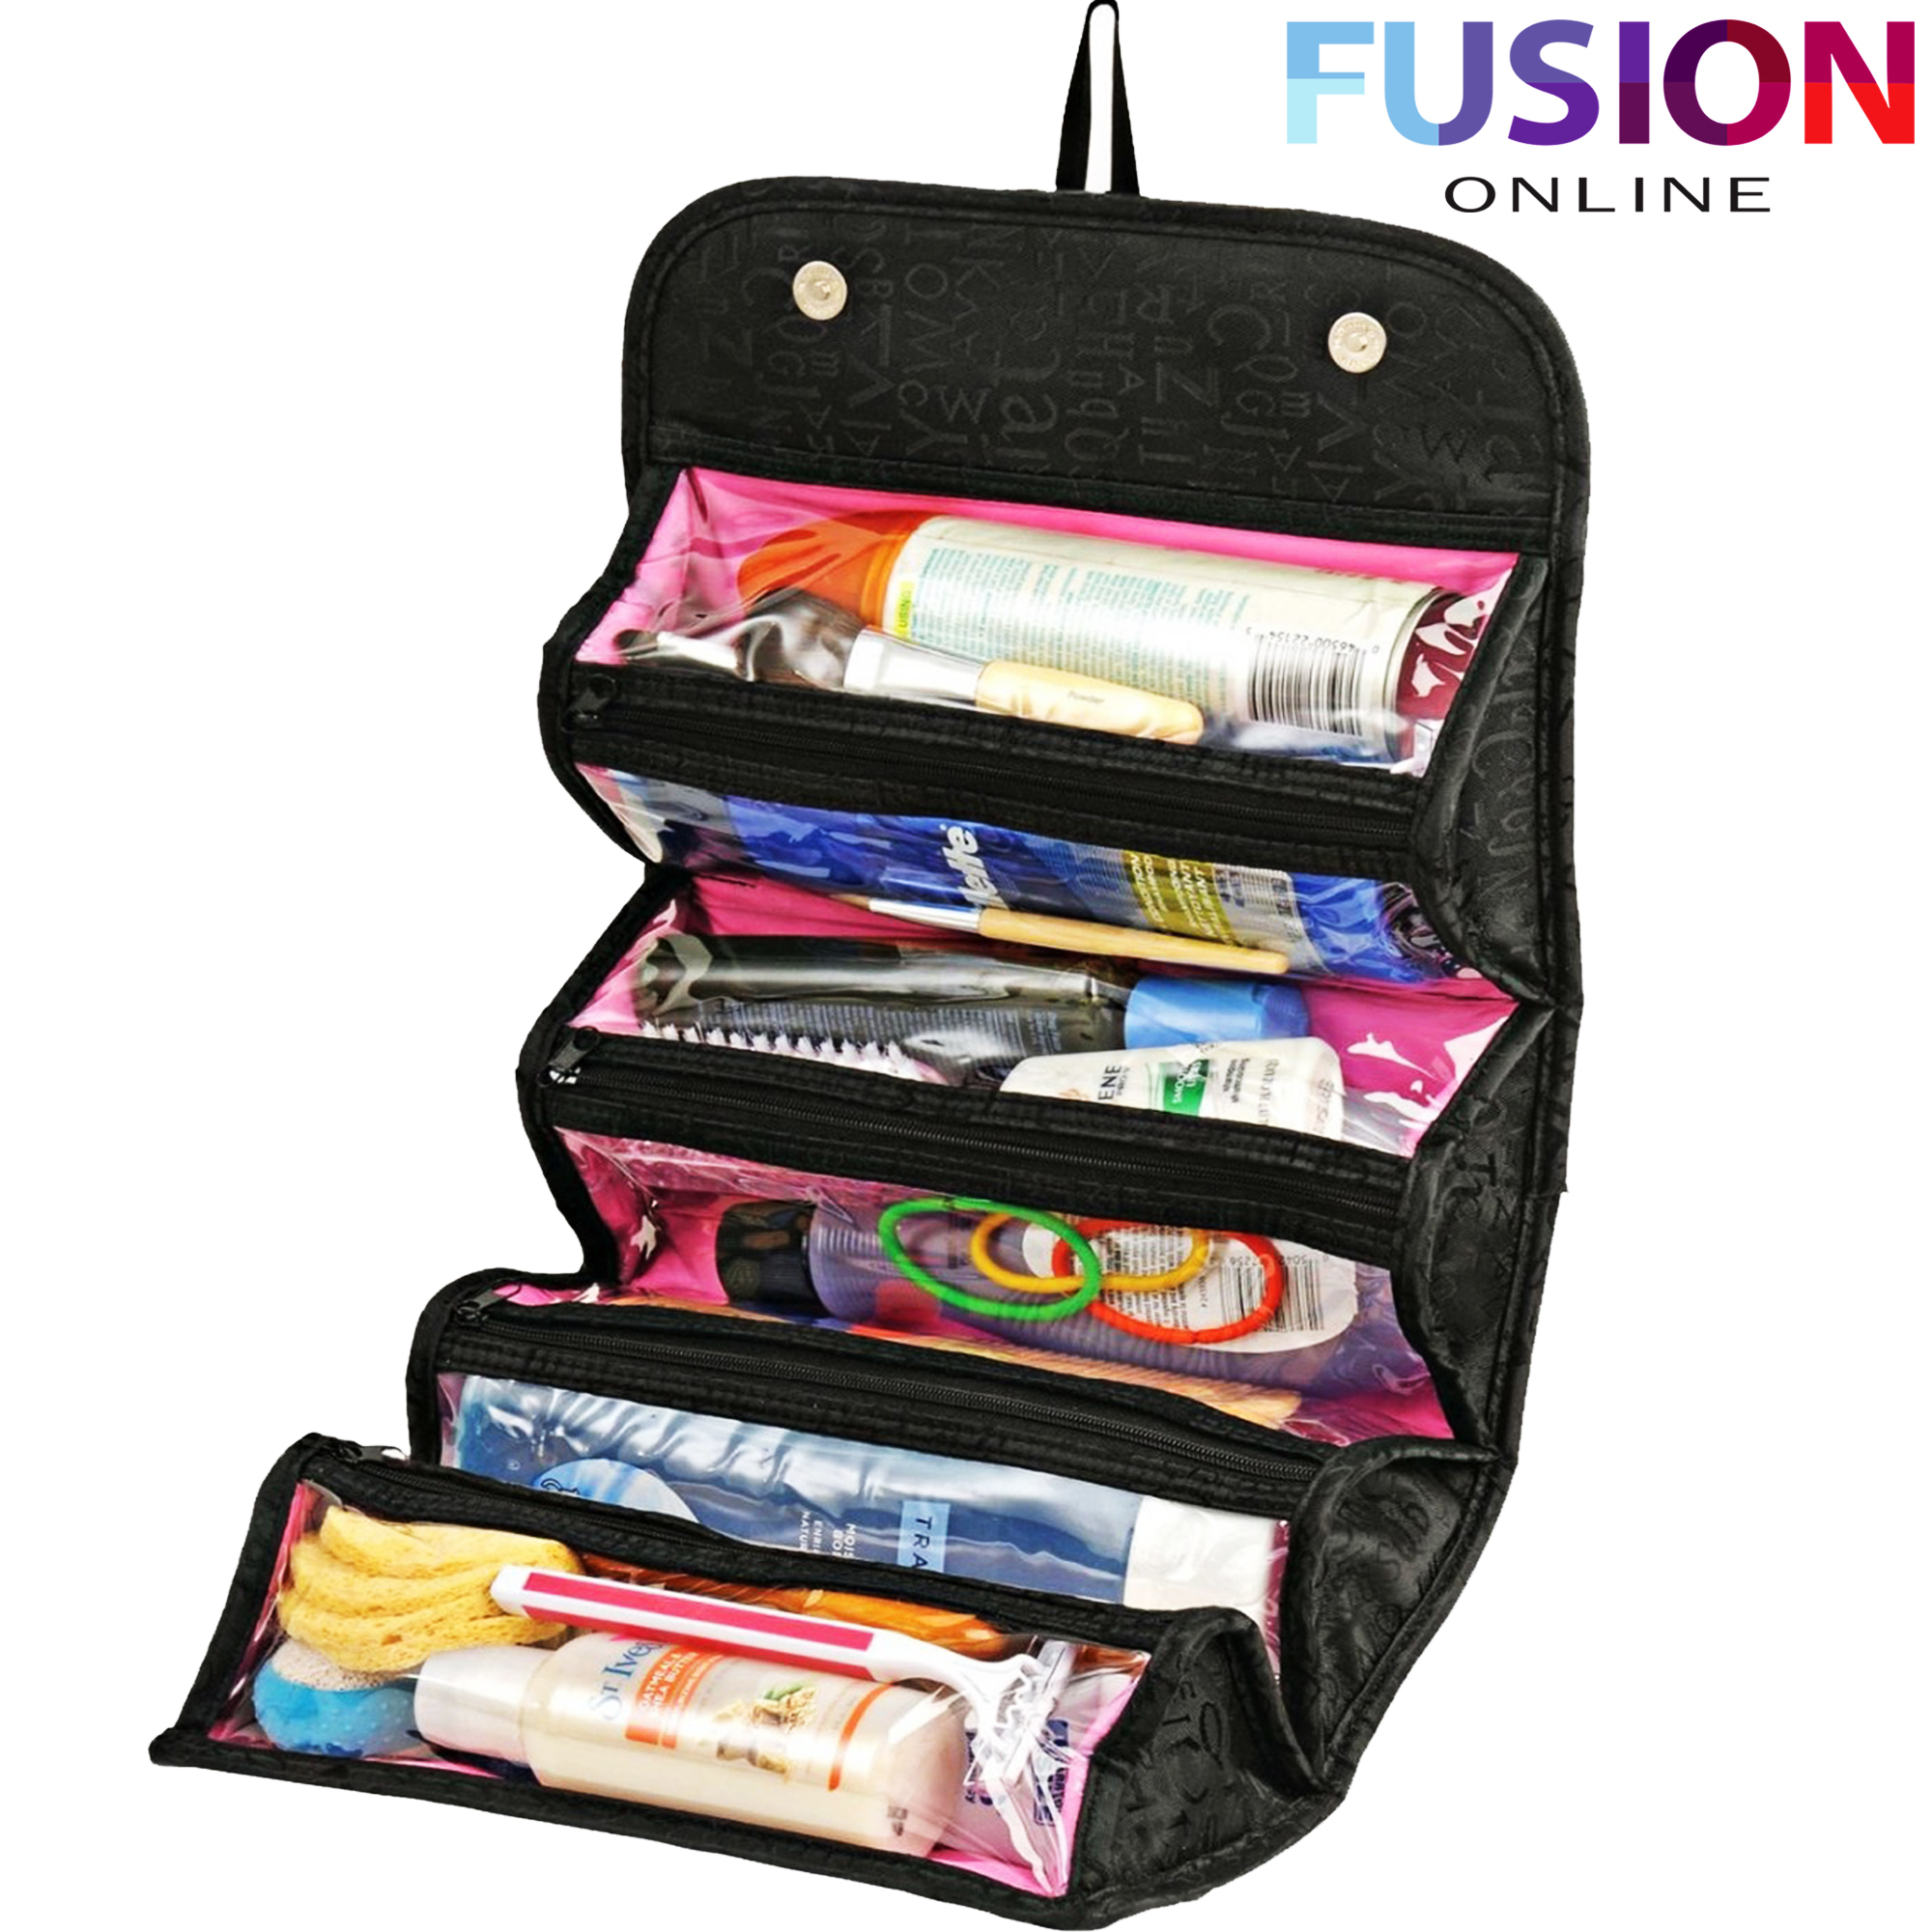 Makeup Case COSMETIC BAG Roll-N-Go Roll Up Travel Pouch Smart Toiletry Bag 157b2b13bae1e